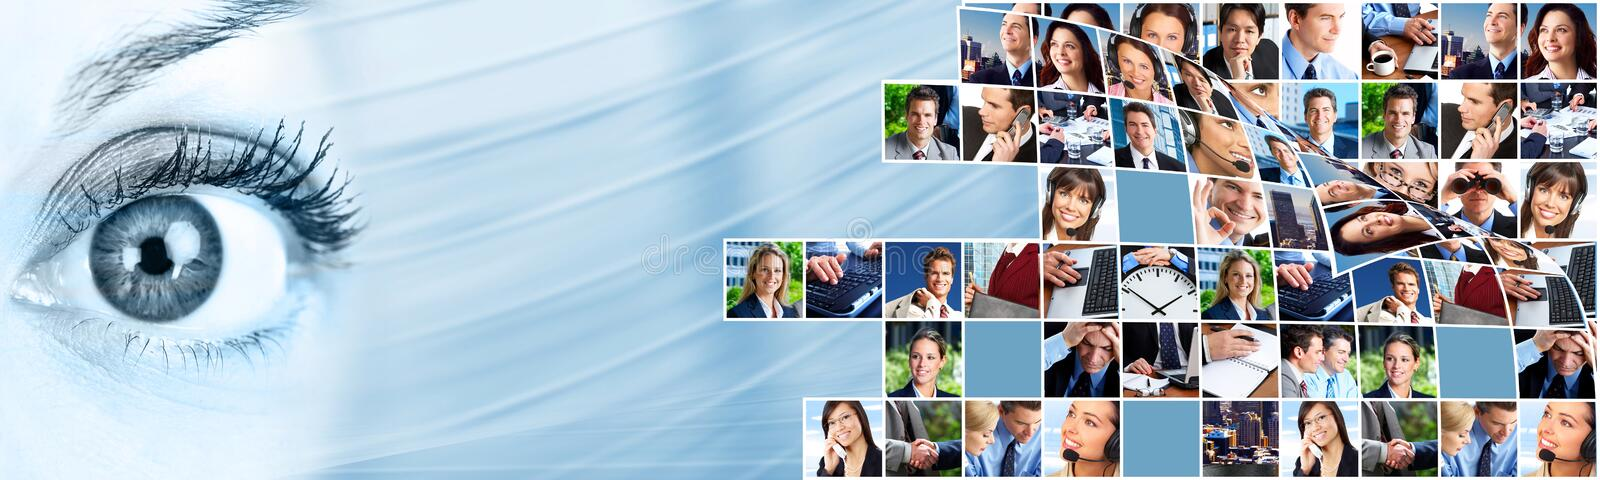 Business people team collage. royalty free stock photos